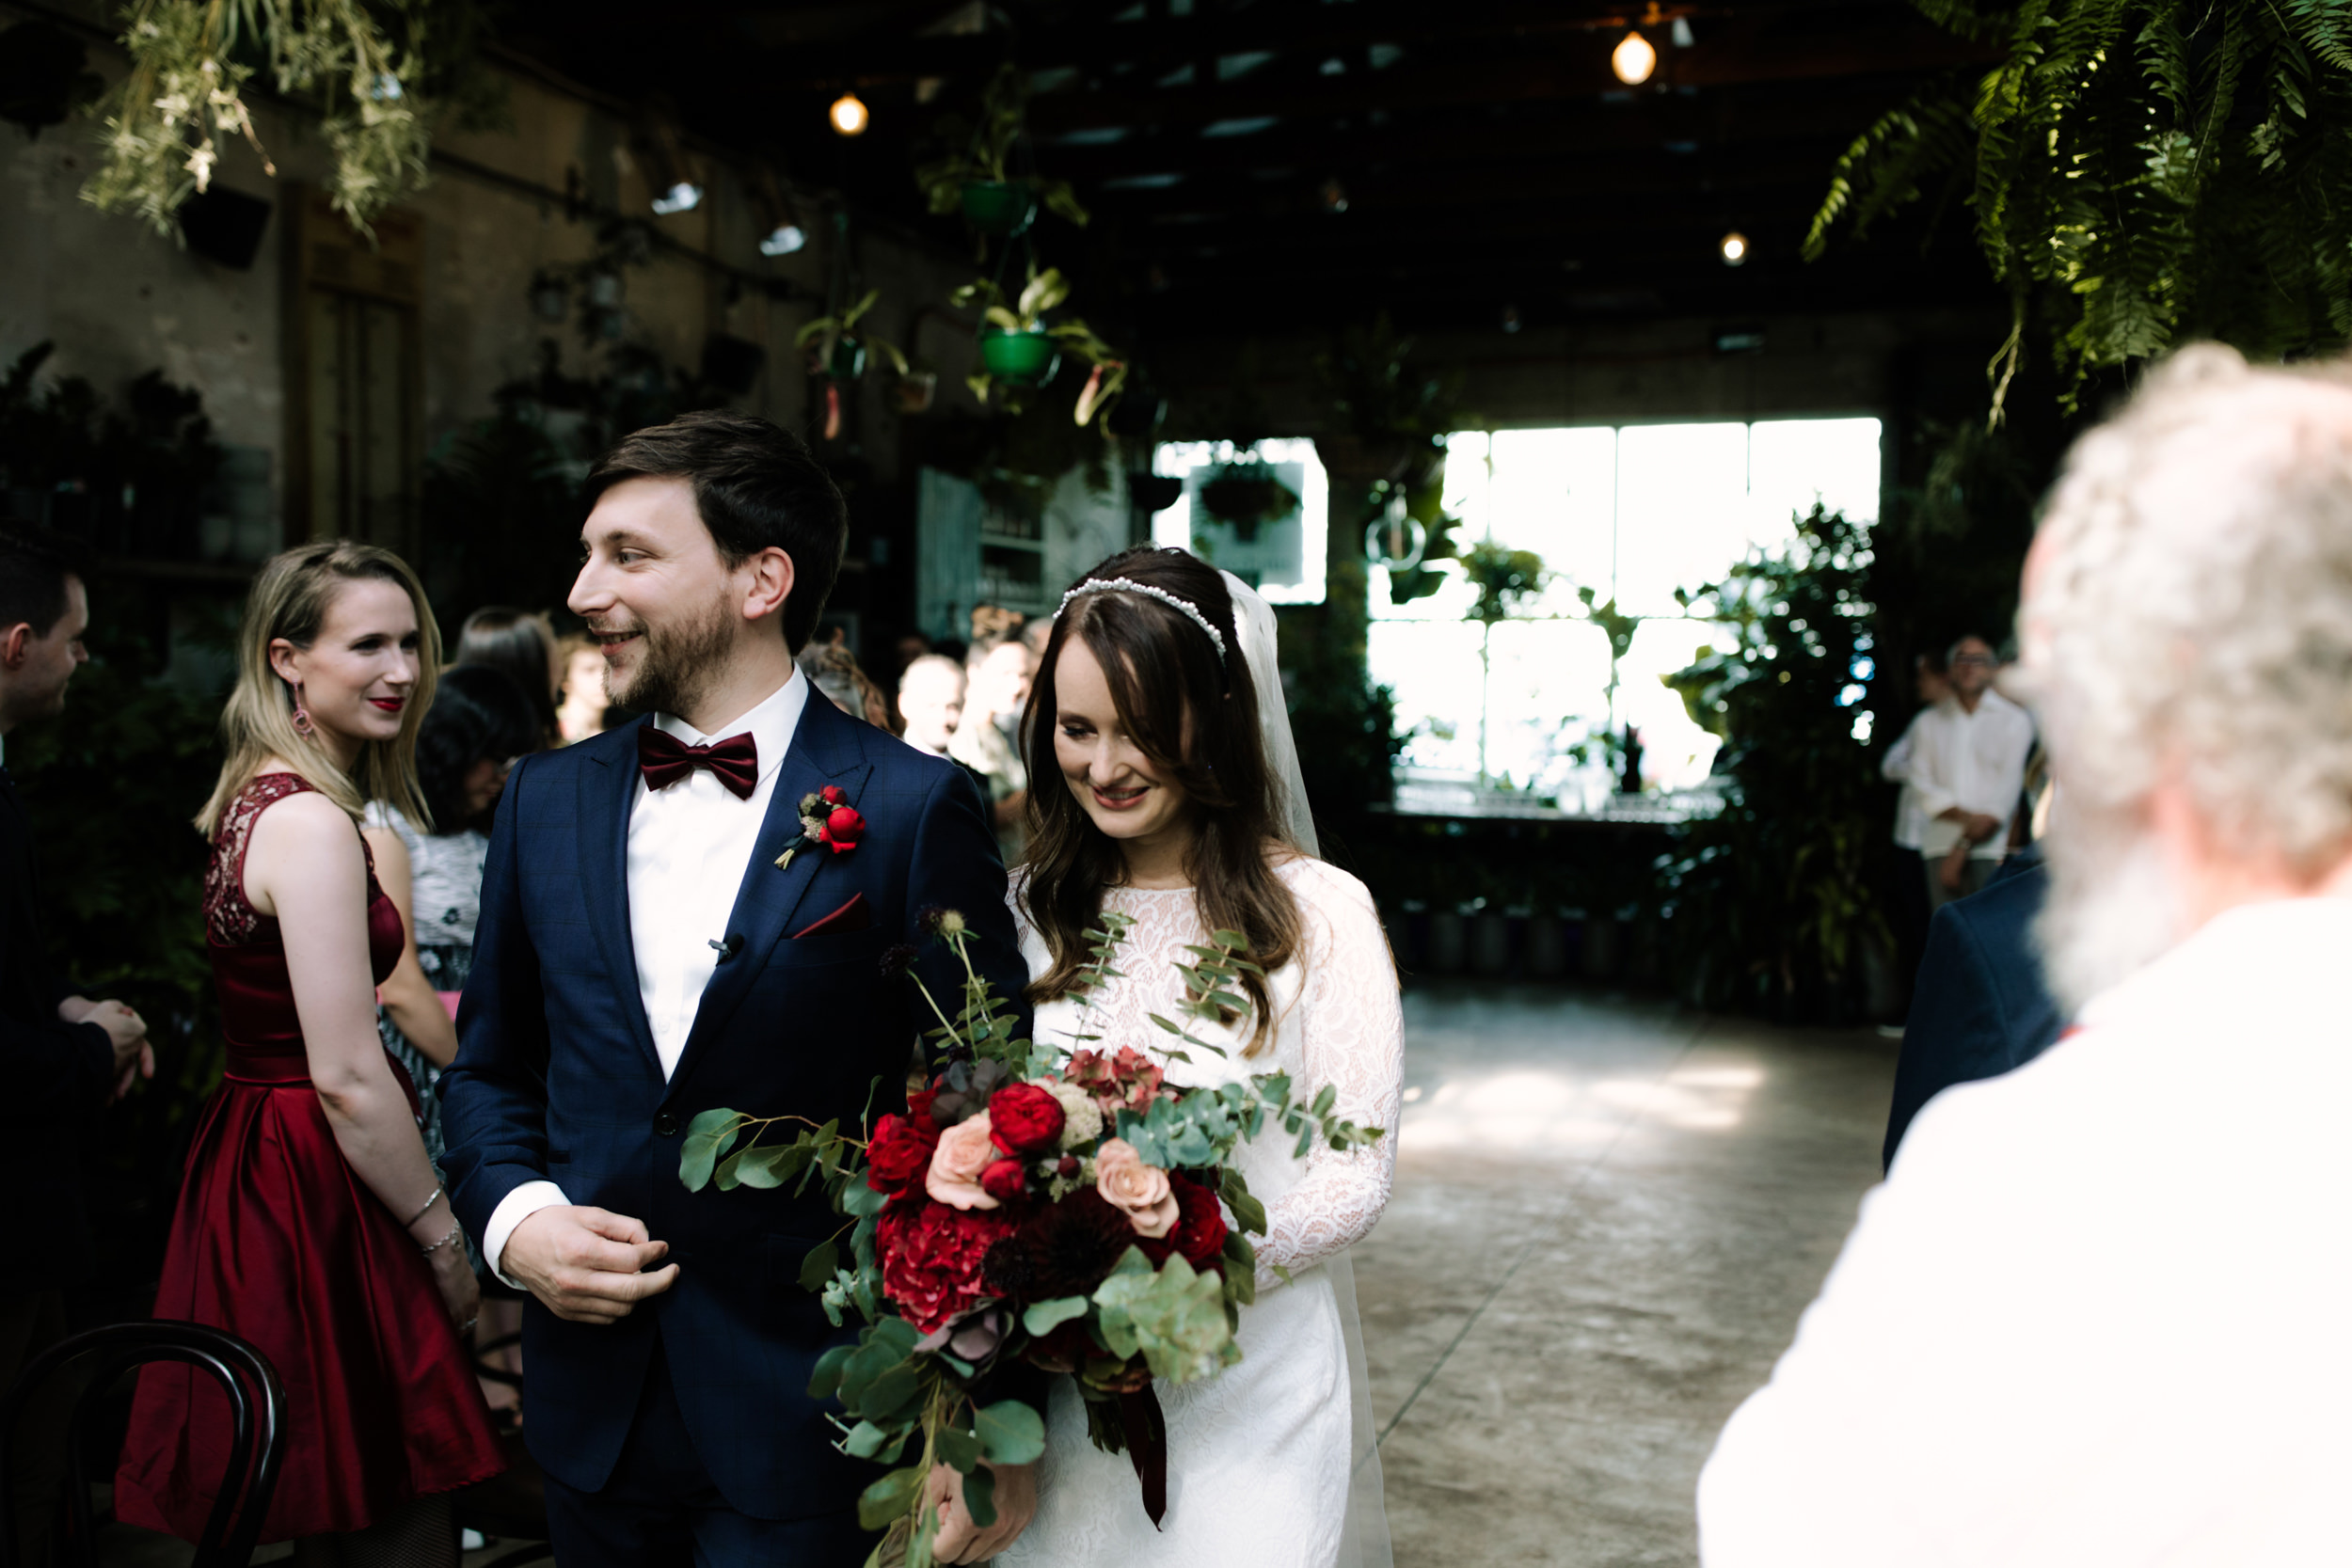 I_Got_You_Babe_Weddings_Emily_Matt_Rupert_Glasshaus_Melbourne0065.JPG